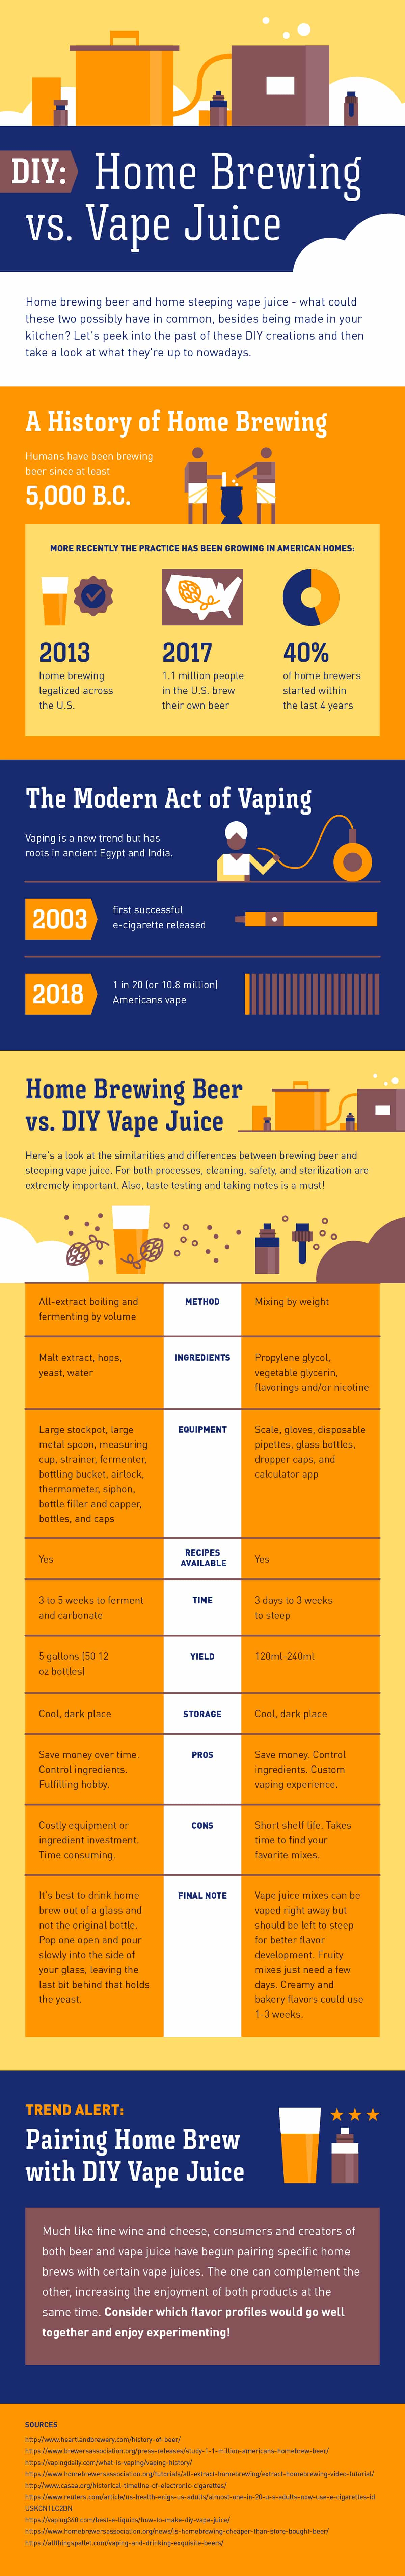 Home Brewing Vs DIY Vape Juice